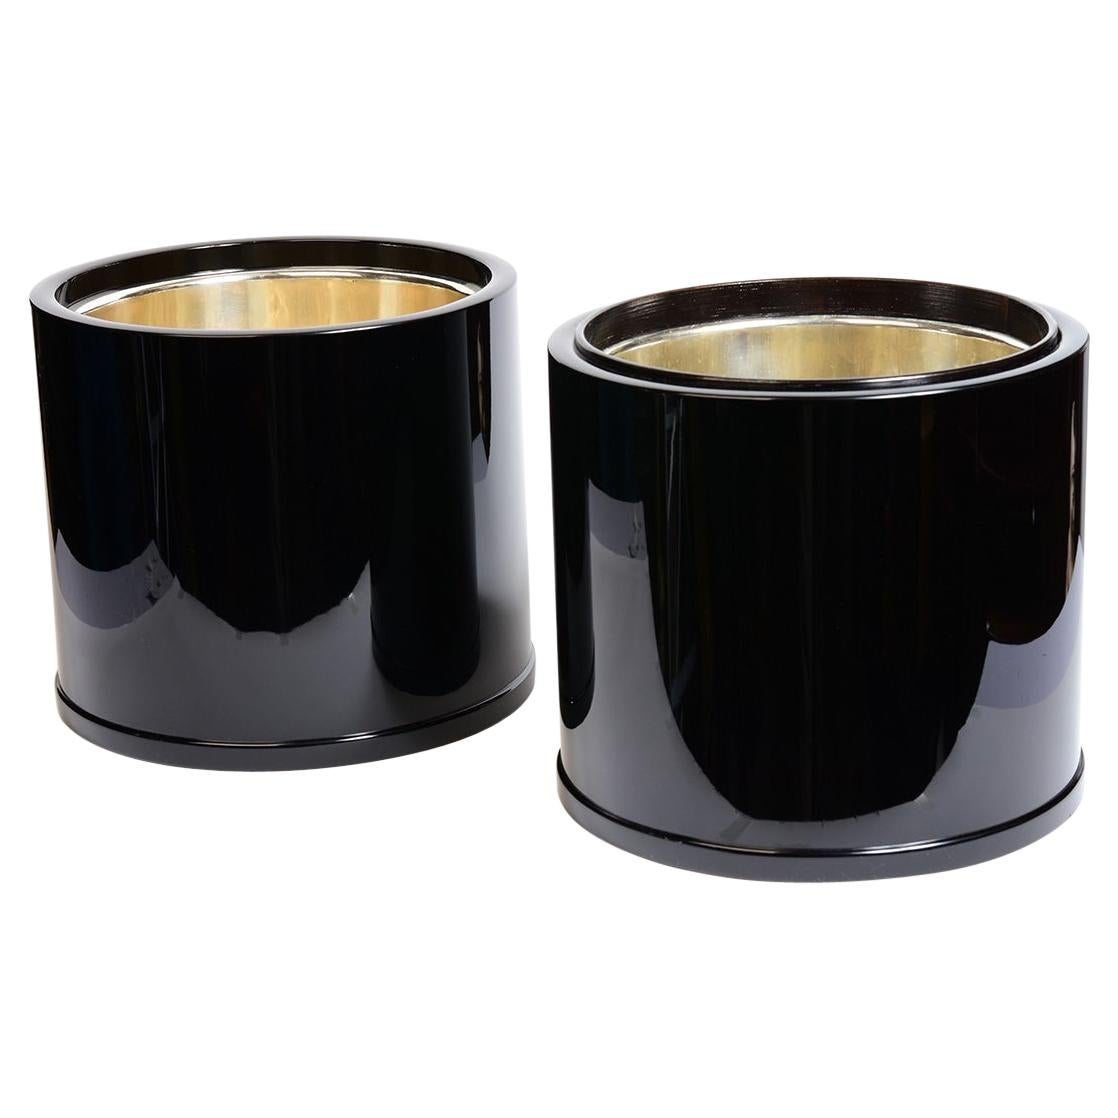 Mid-20th Century, Showa, A Pair of Japanese Hibachi Vessels with Black Lacquer